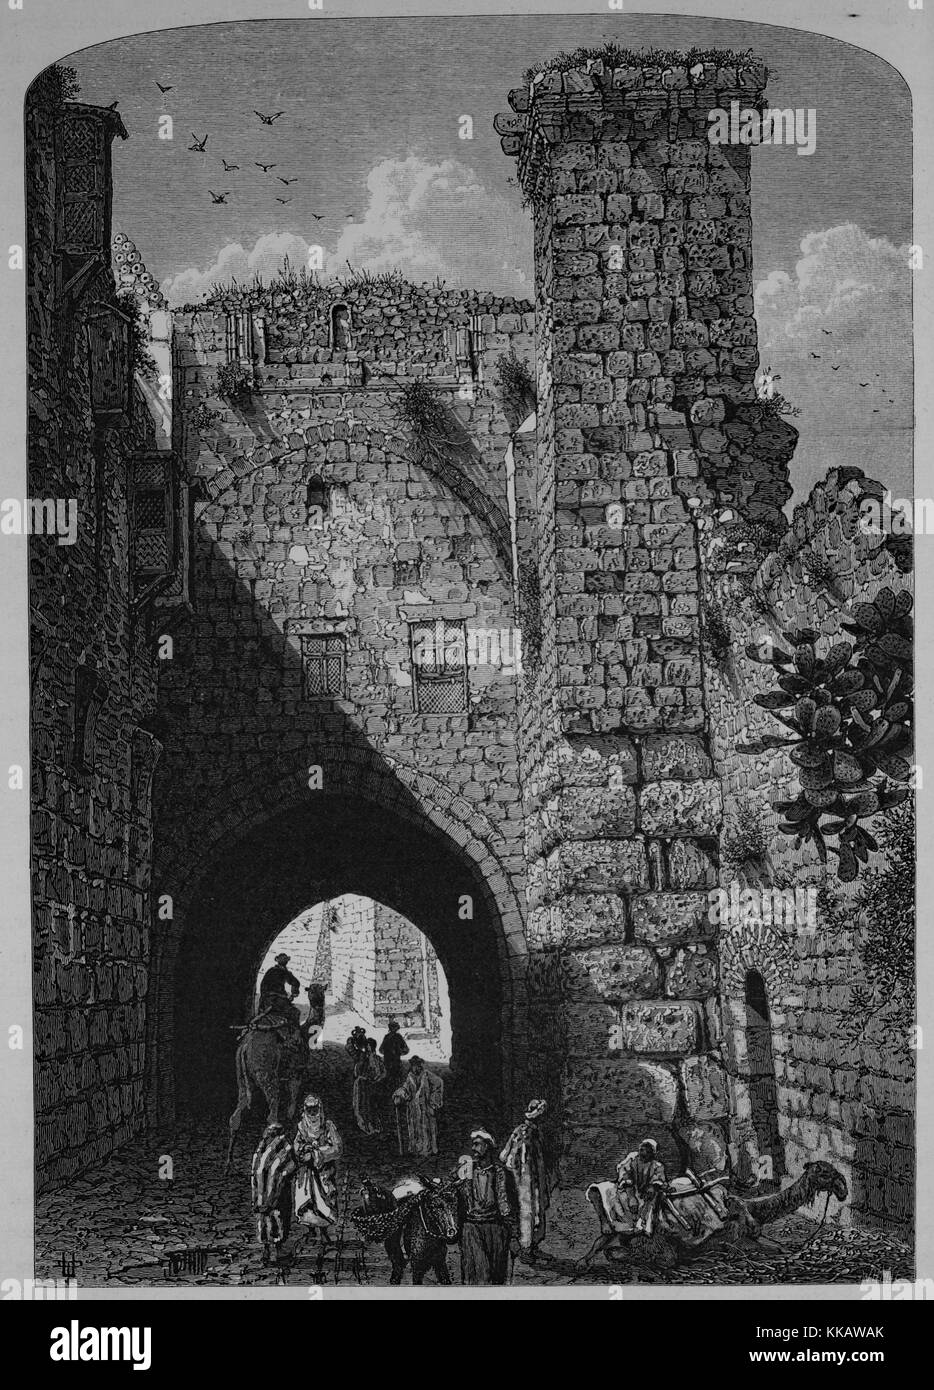 An engraving depicting people congregating and traveling through a stone archway at the Antonia Fortress, it was - Stock Image